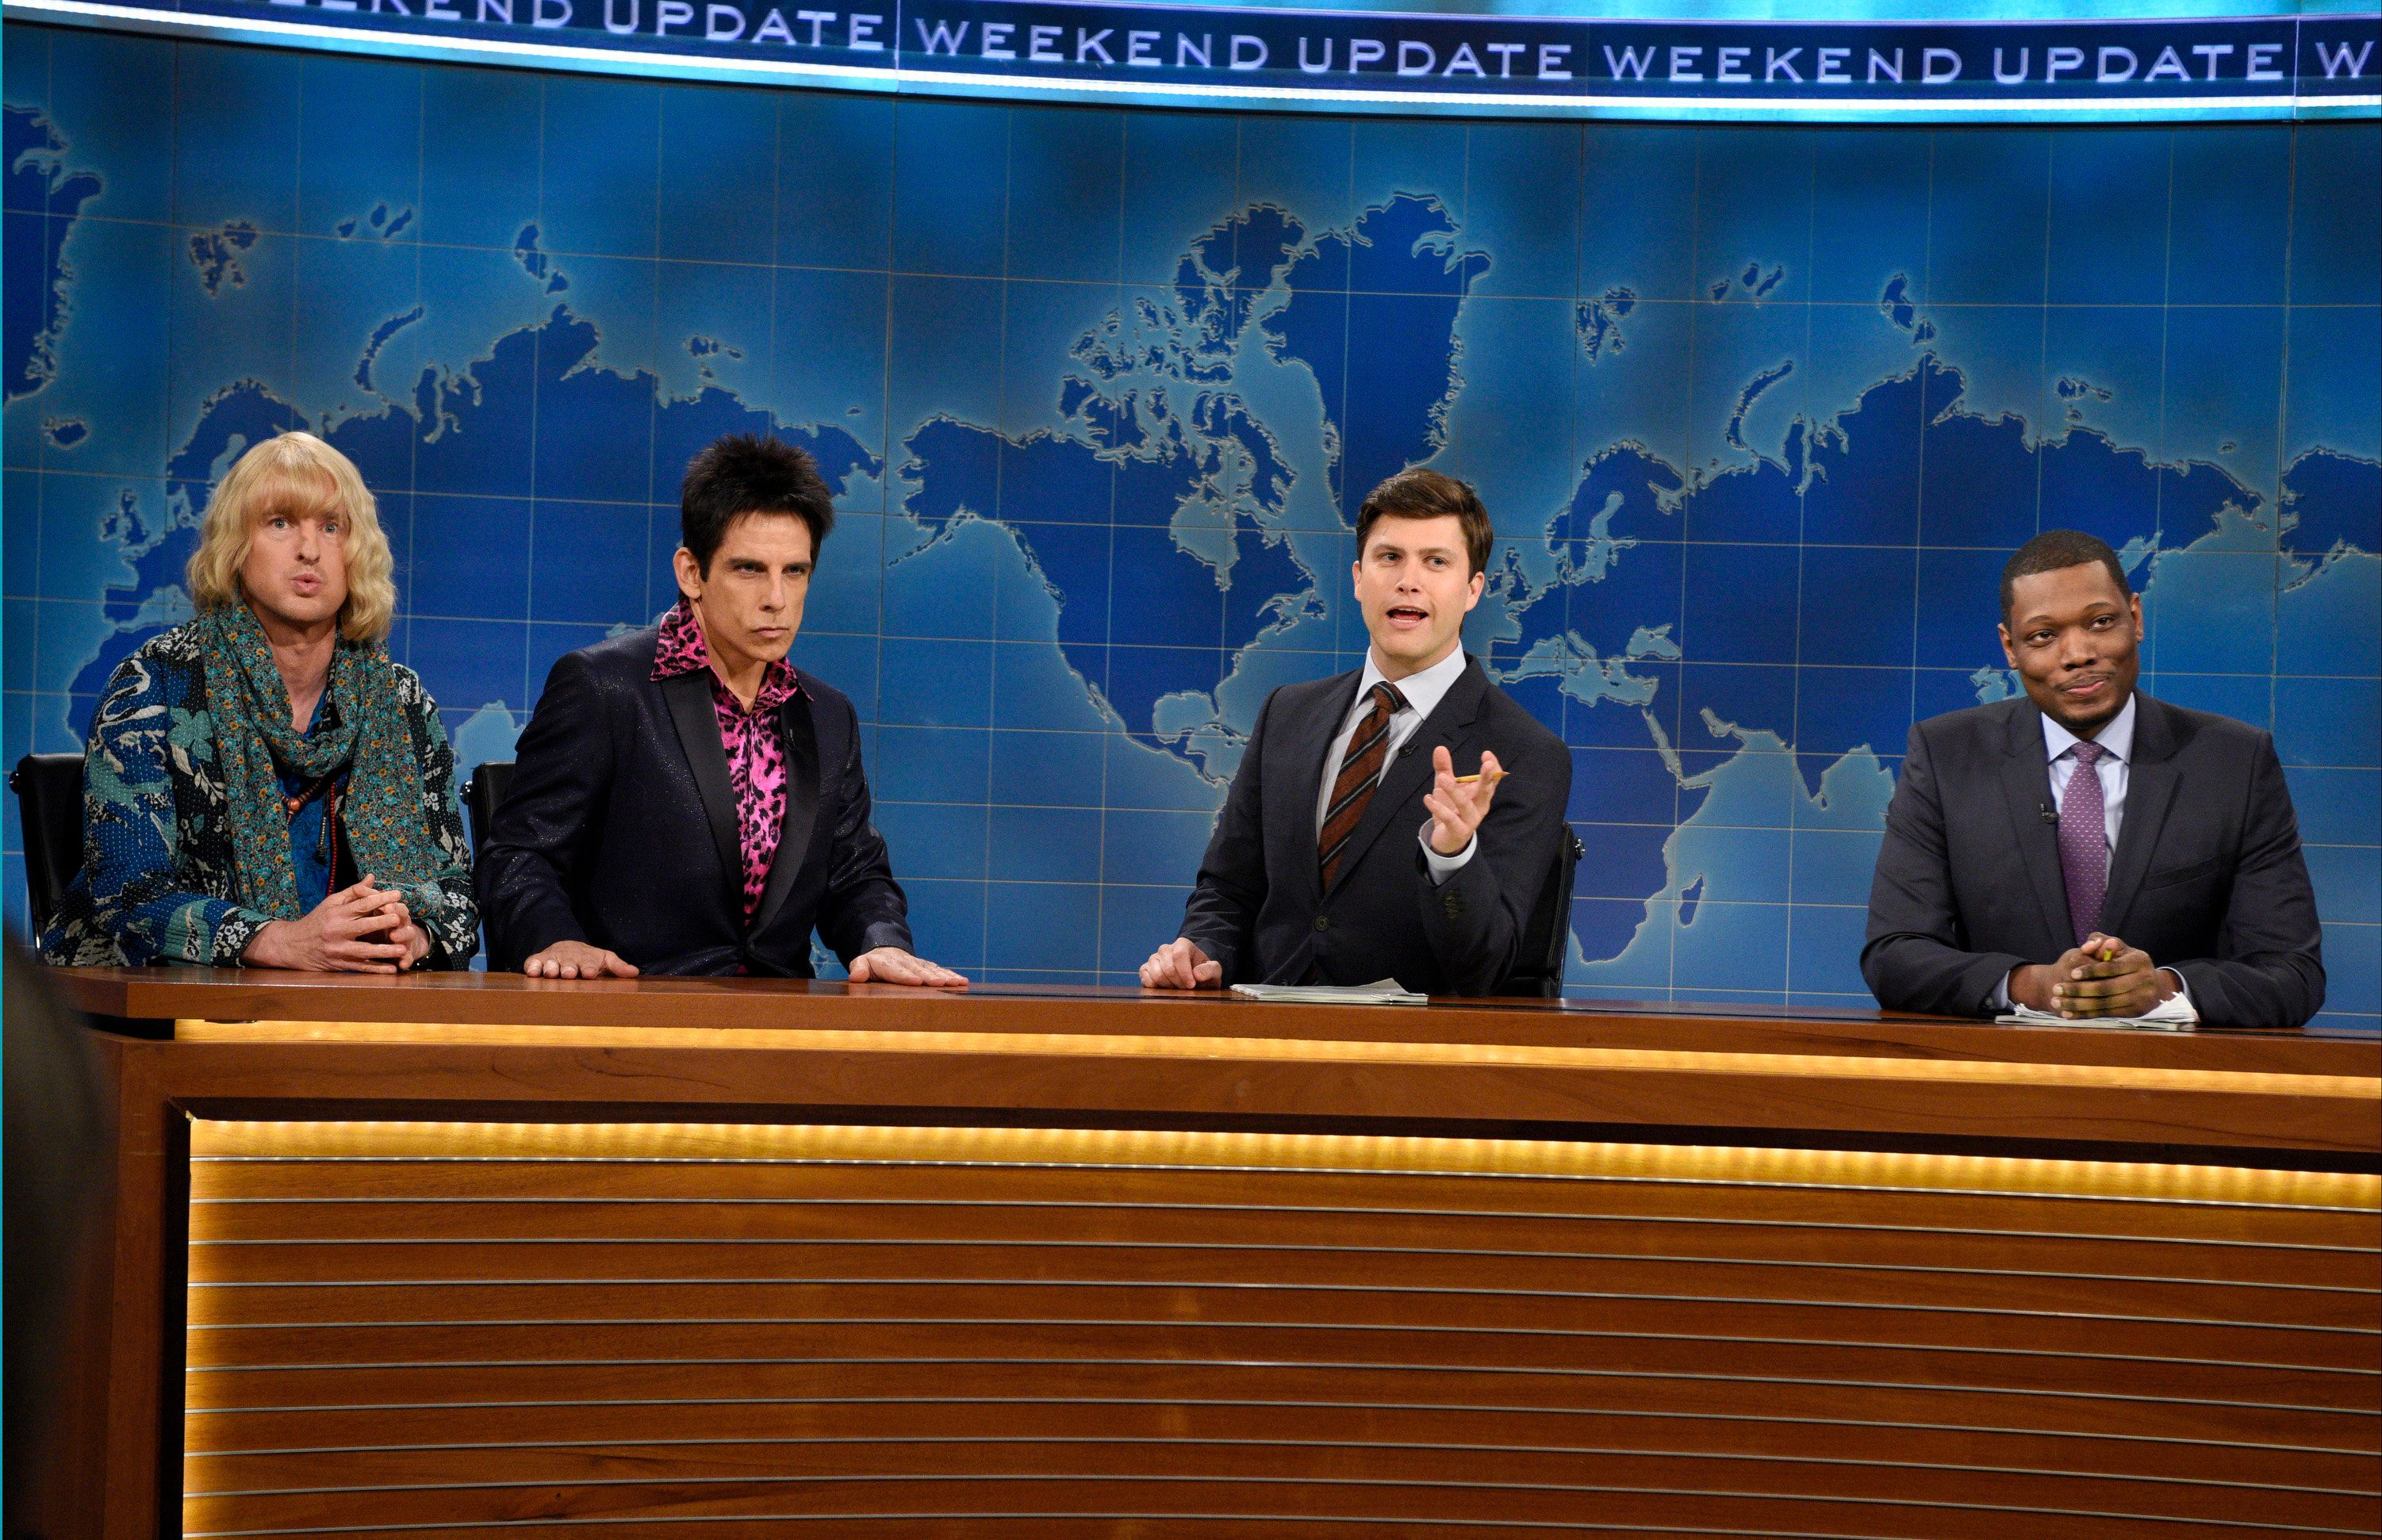 Bill Hader, Leslie Jones Stole the Show on SNL's Weekend Update